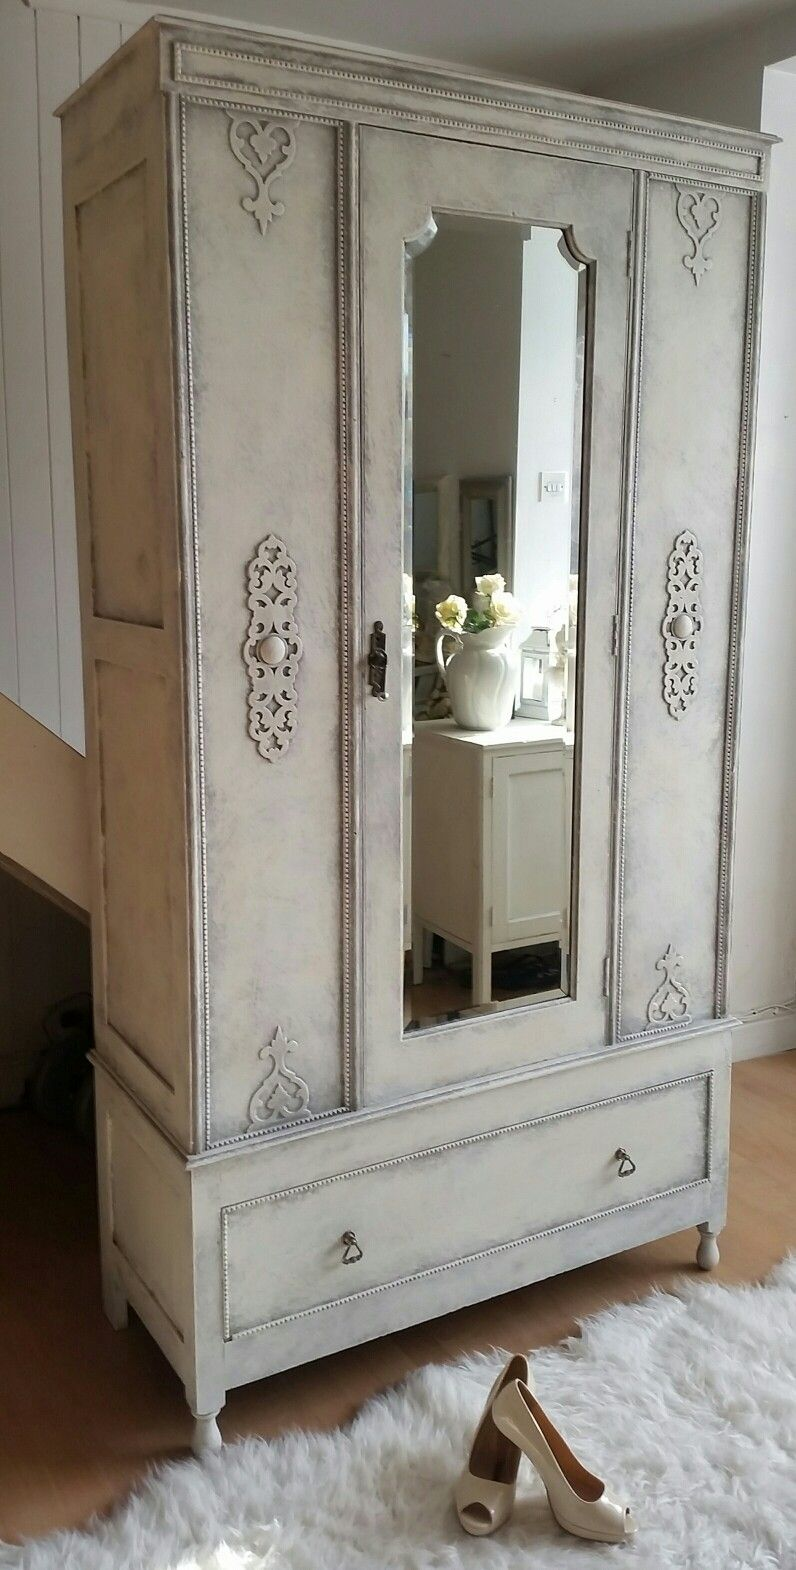 Canapé Shabby Chic beautiful romantic shabby chic wardrobe in anne sloan